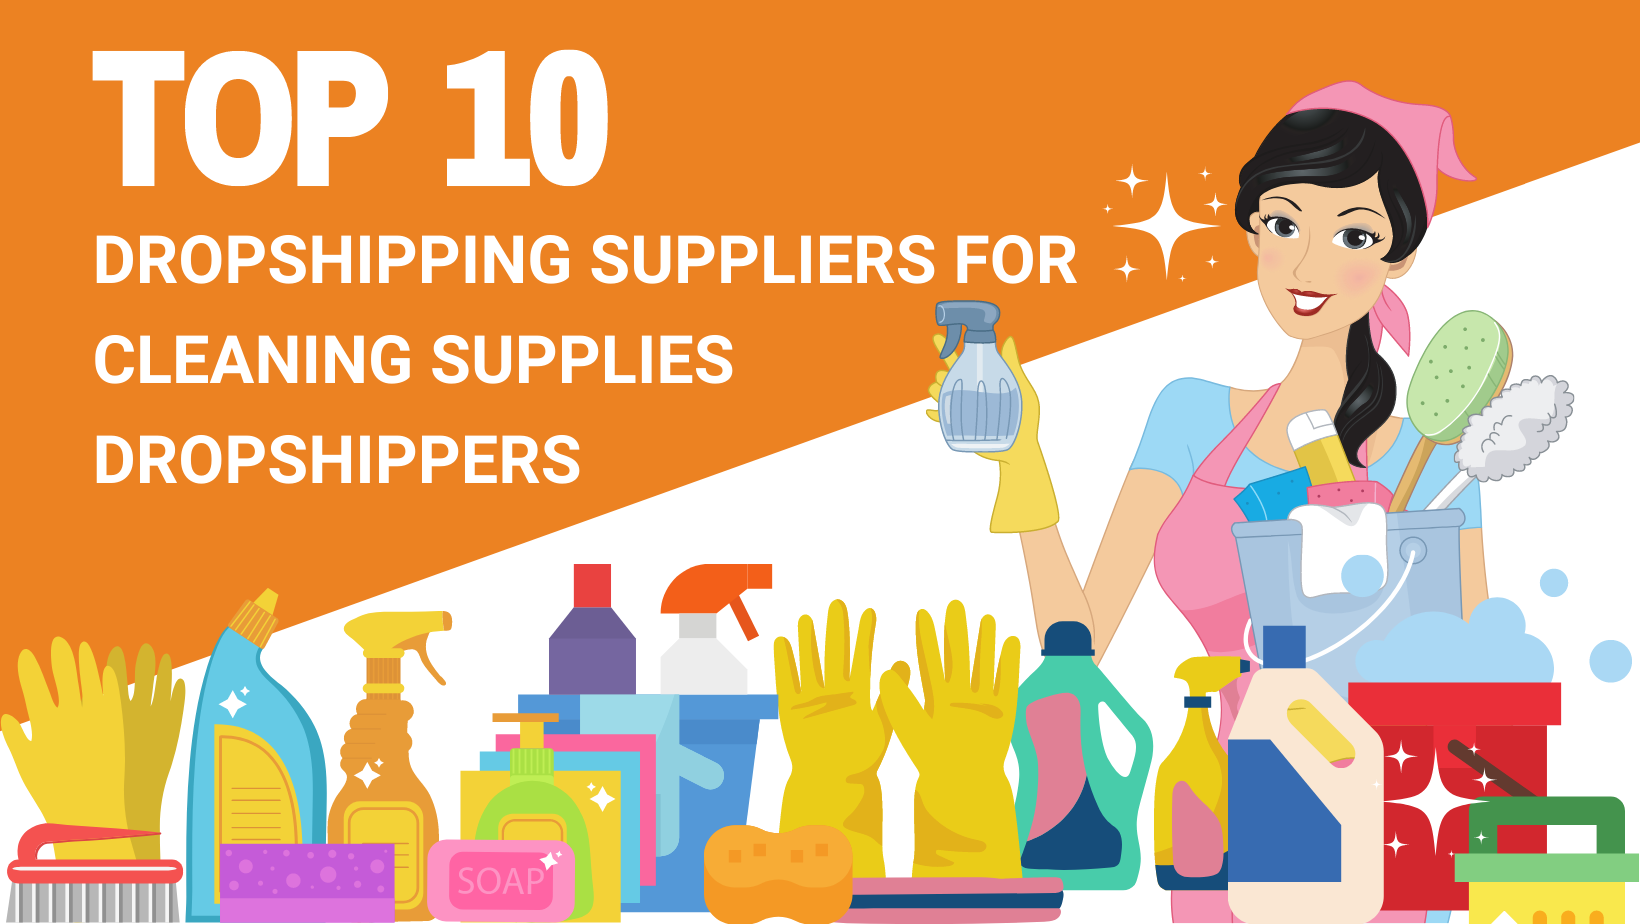 TOP 10 DROPSHIPPING SUPPLIERS FOR CLEANING SUPPLIES DROPSHIPPERS